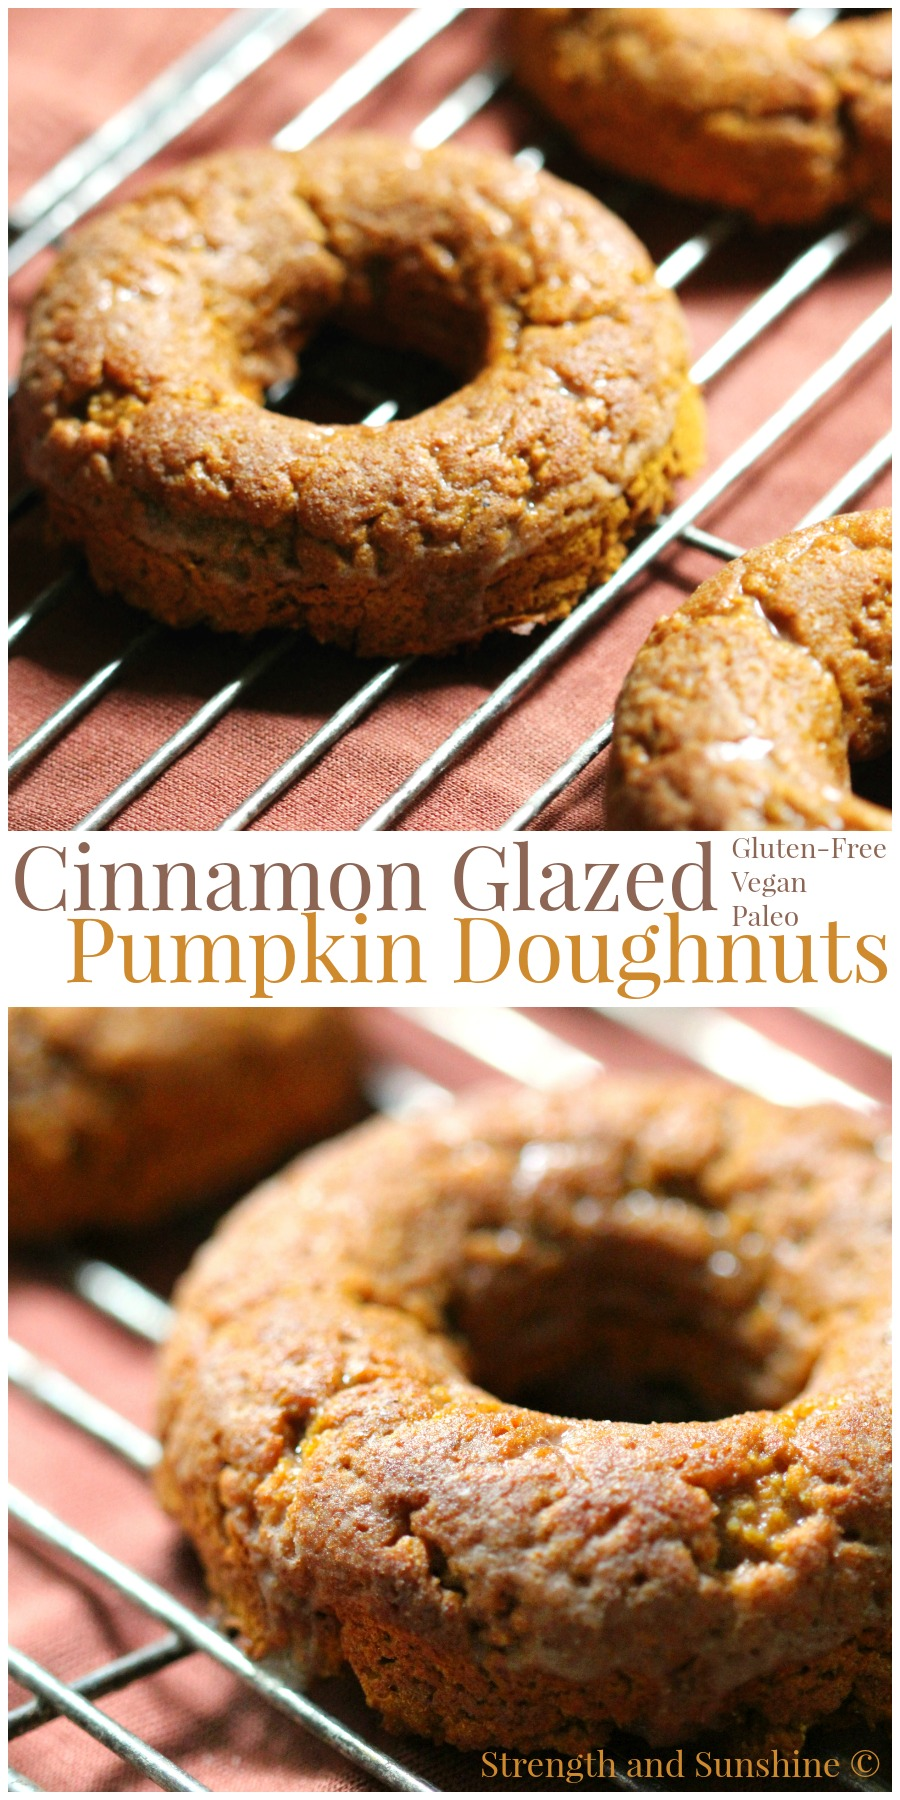 Cinnamon Glazed Pumpkin Doughnuts | Strength and Sunshine @RebeccaGF666 Your morning coffee companion just got sweeter. Cinnamon Glazed Pumpkin Doughnuts, baked to perfection and loaded with pumpkin. Gluten-free, vegan, and paleo, the flavors of fall will keep everyone warm and cozy!